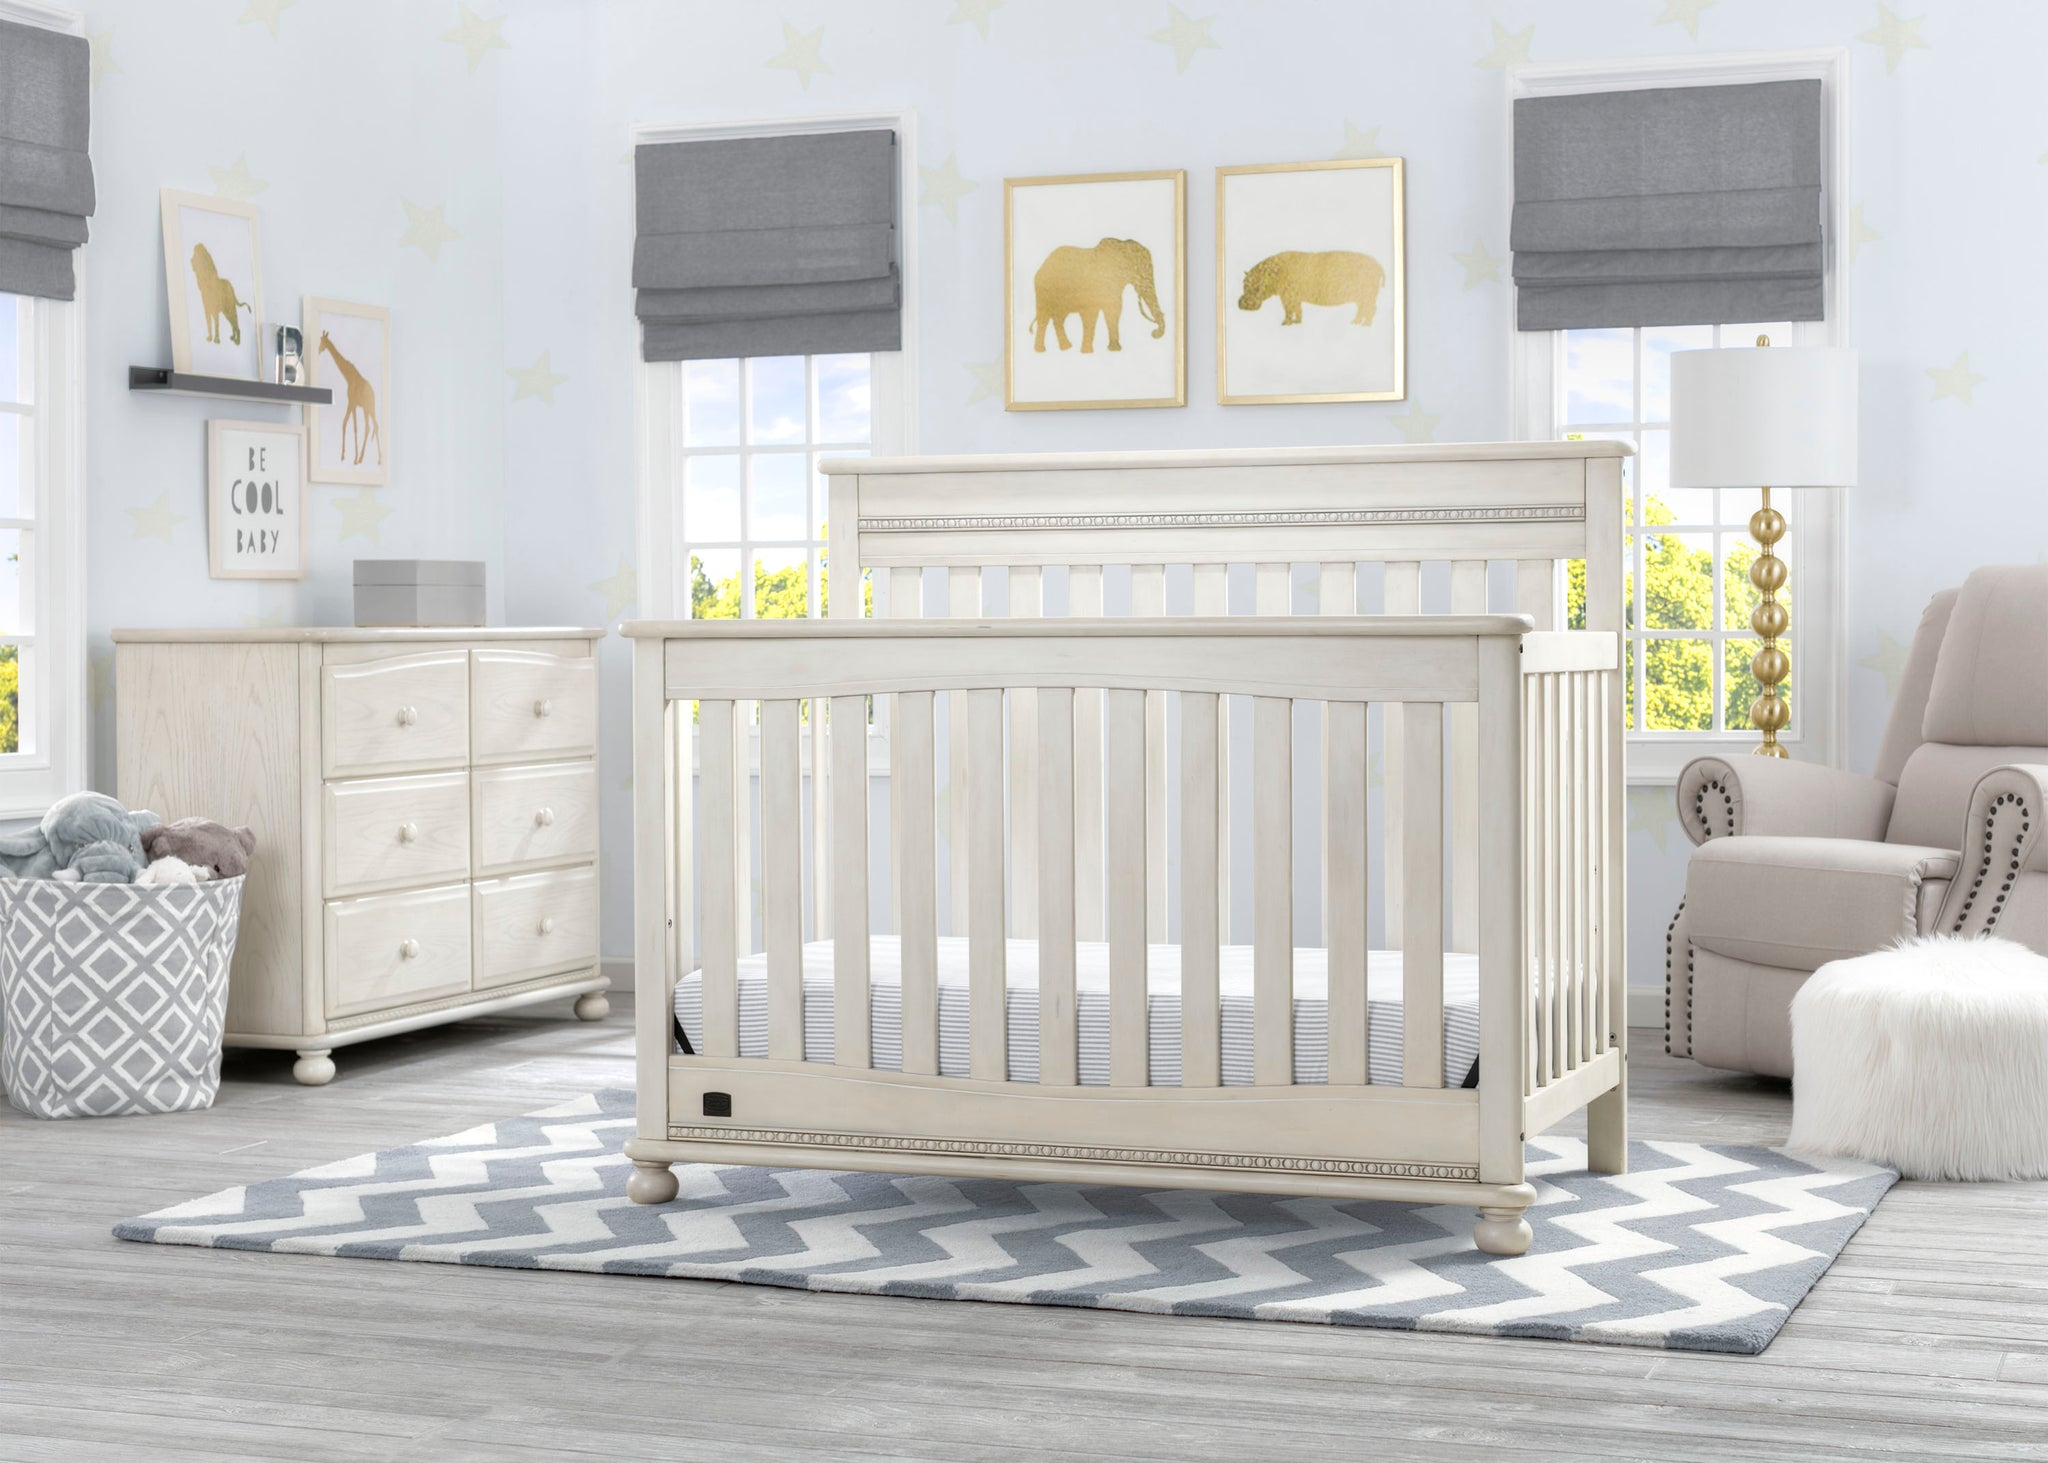 Delta Children Antique White (122) Franklin 4-in-1 Convertible Crib (W337550) Room View, a1a